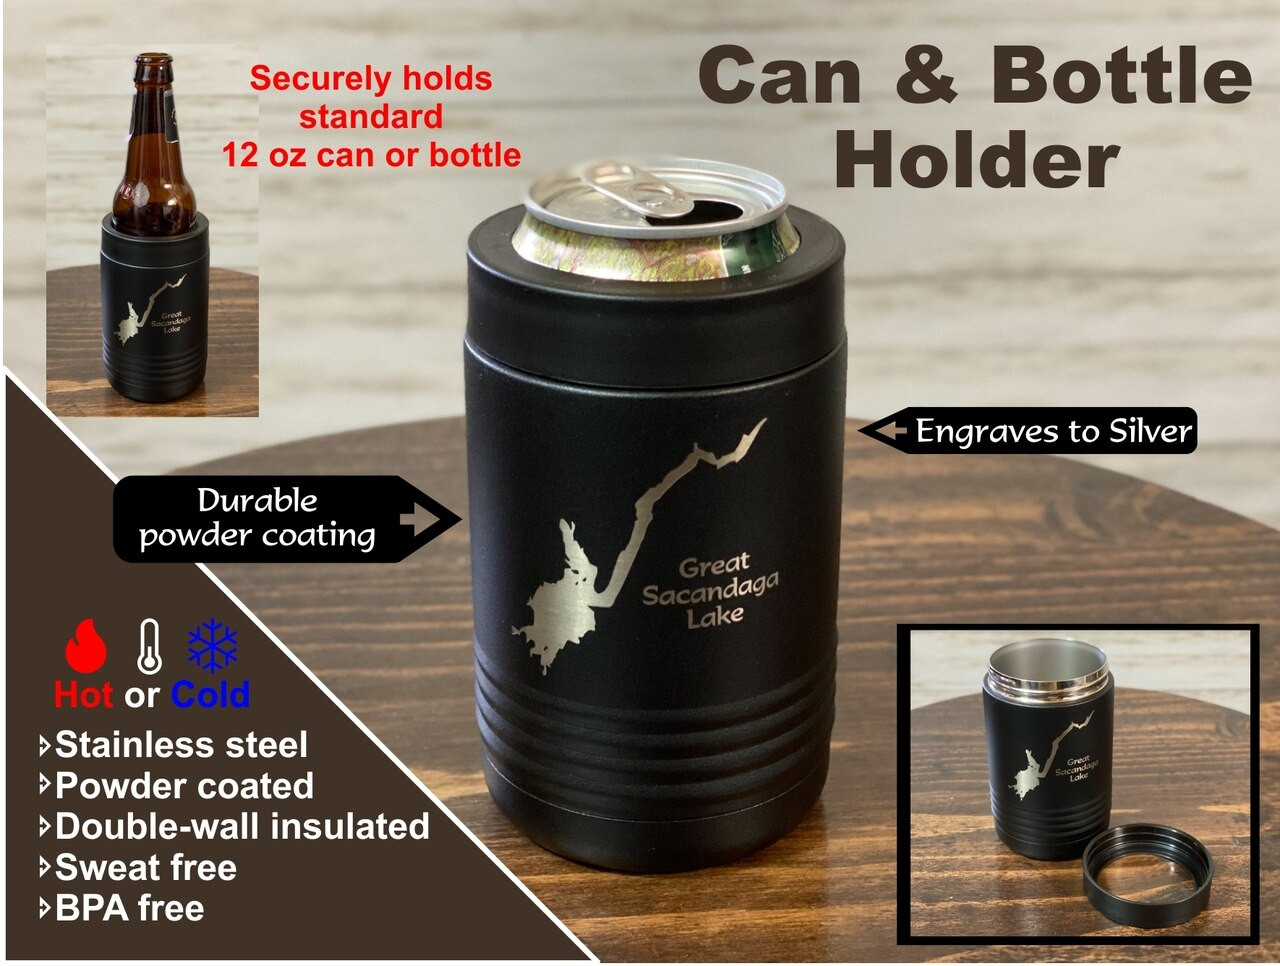 Great Sacandaga Lake - Insulated Can and Bottle Holder